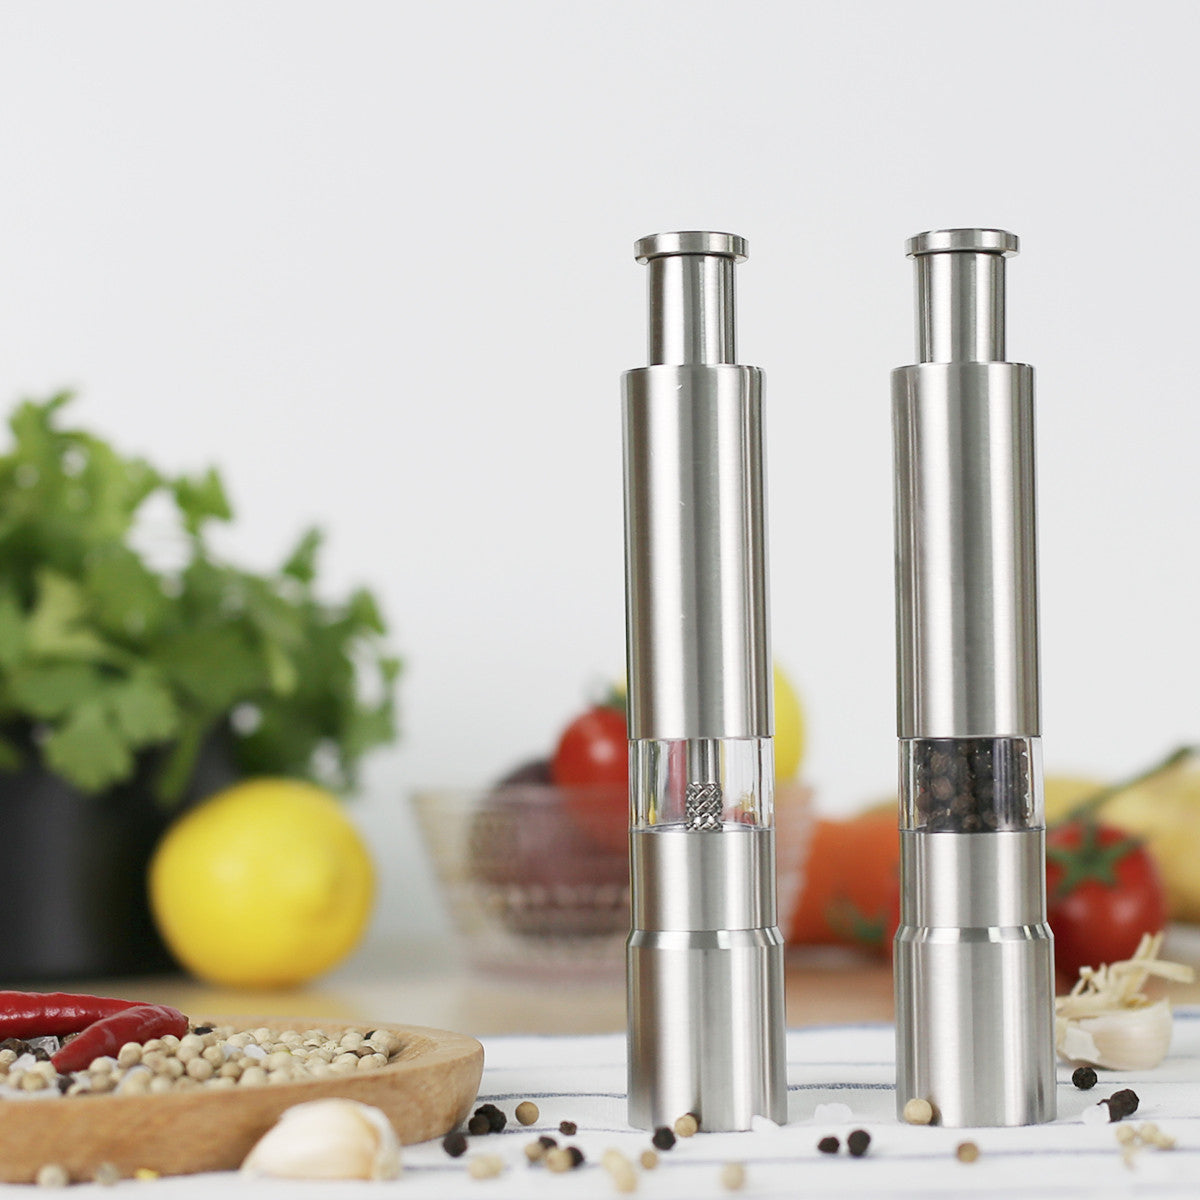 Electric Pepper Grinder with LED Light, Stainless Steel Battery Operated Grinder